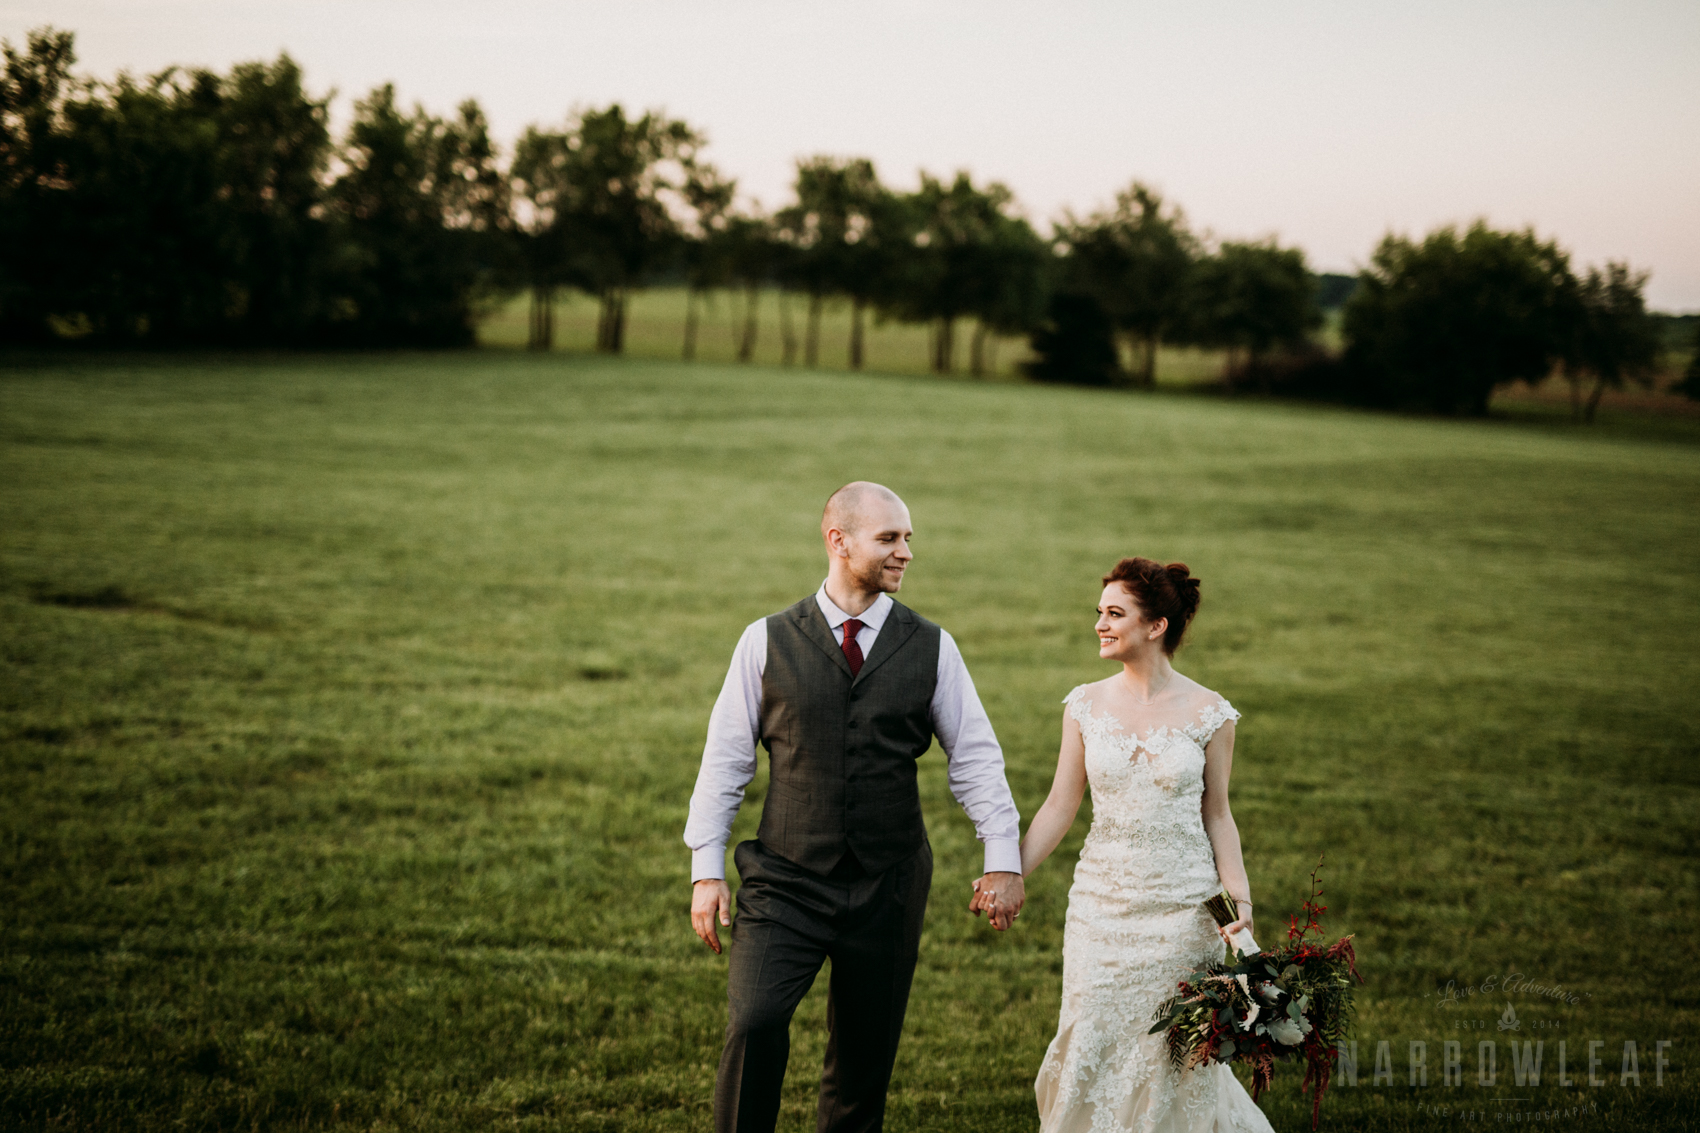 bride-groom-romantic-sunset-photos-rustys-hitching-post-event-center-new-richmond-wi-54.jpg